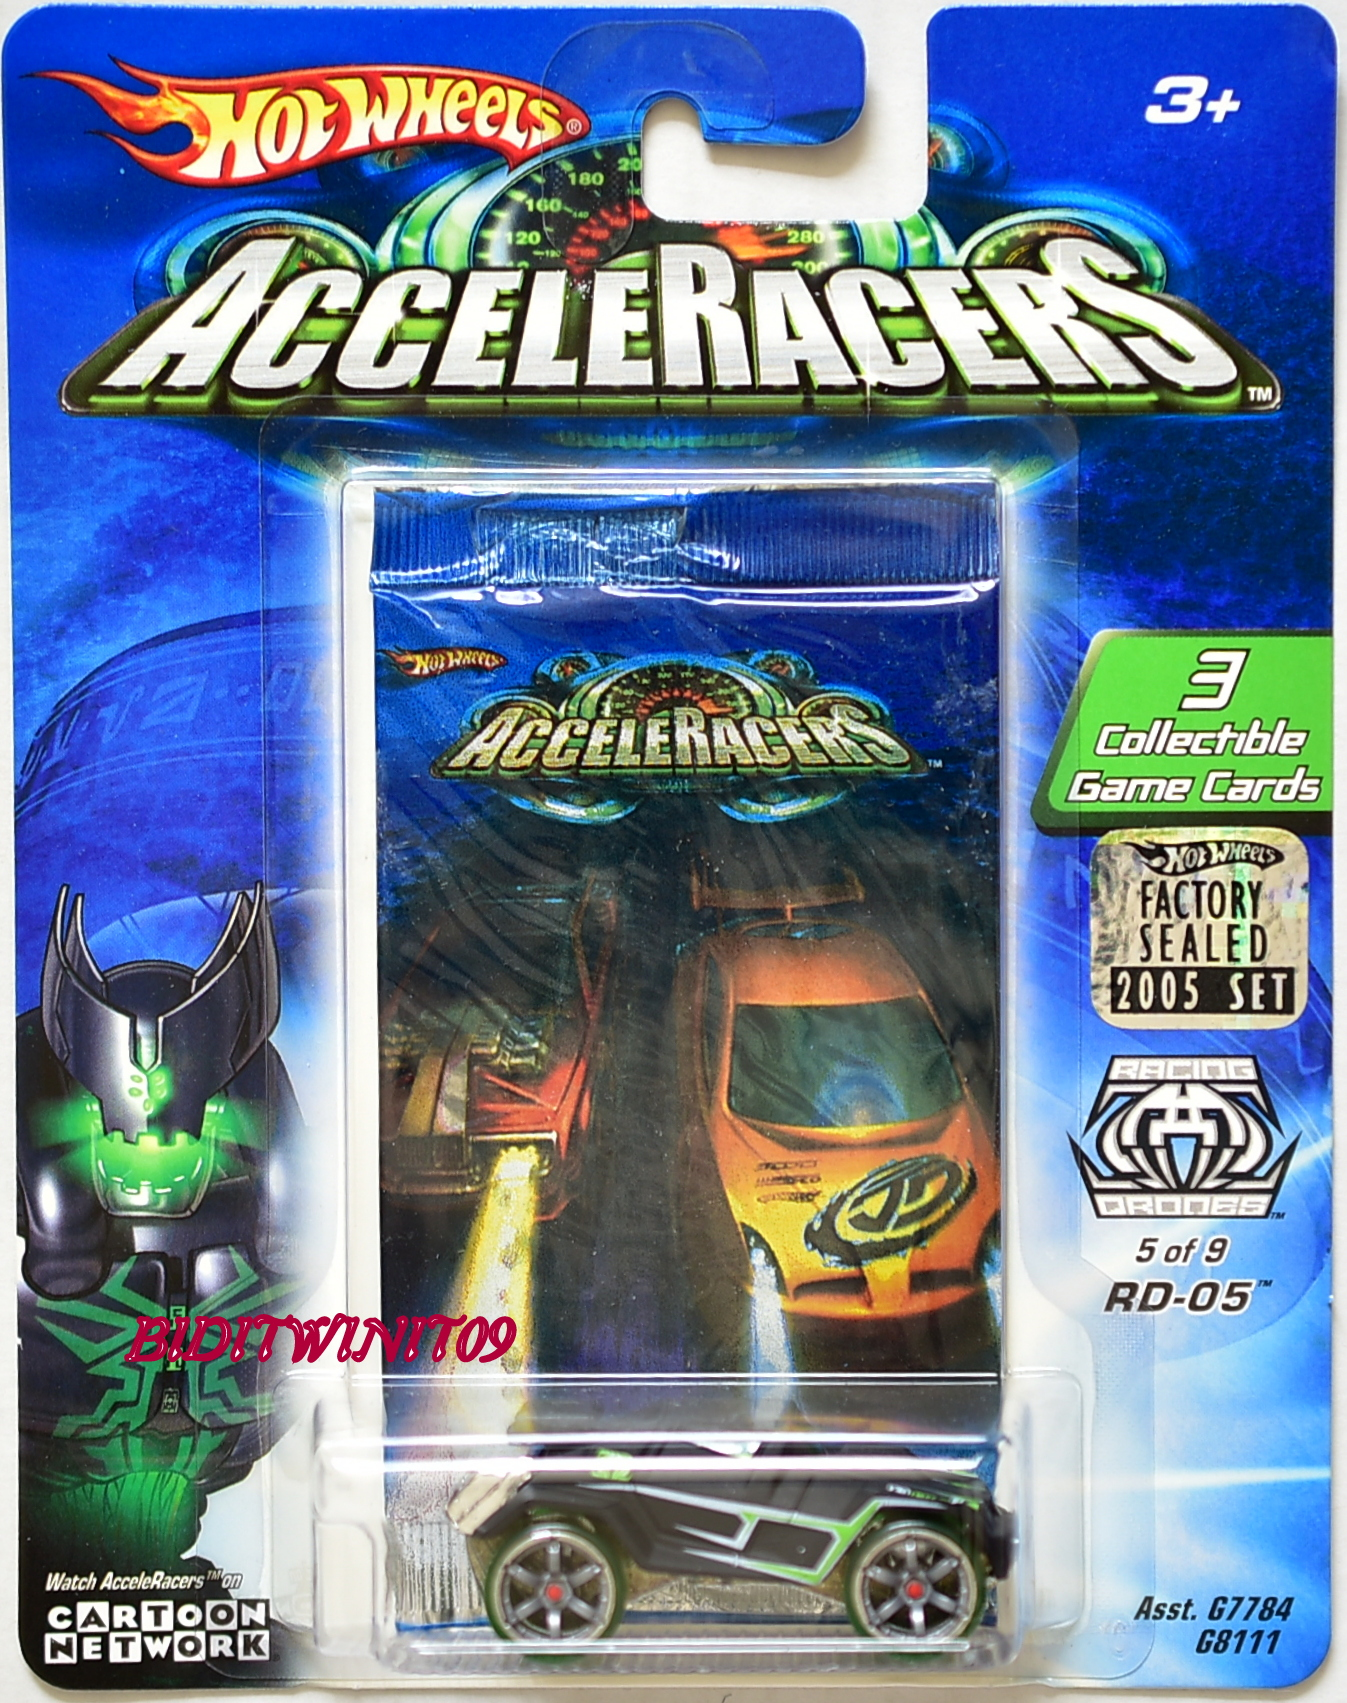 HOT WHEELS ACCELERACERS RD-05 5/9 FACTORY SEALED